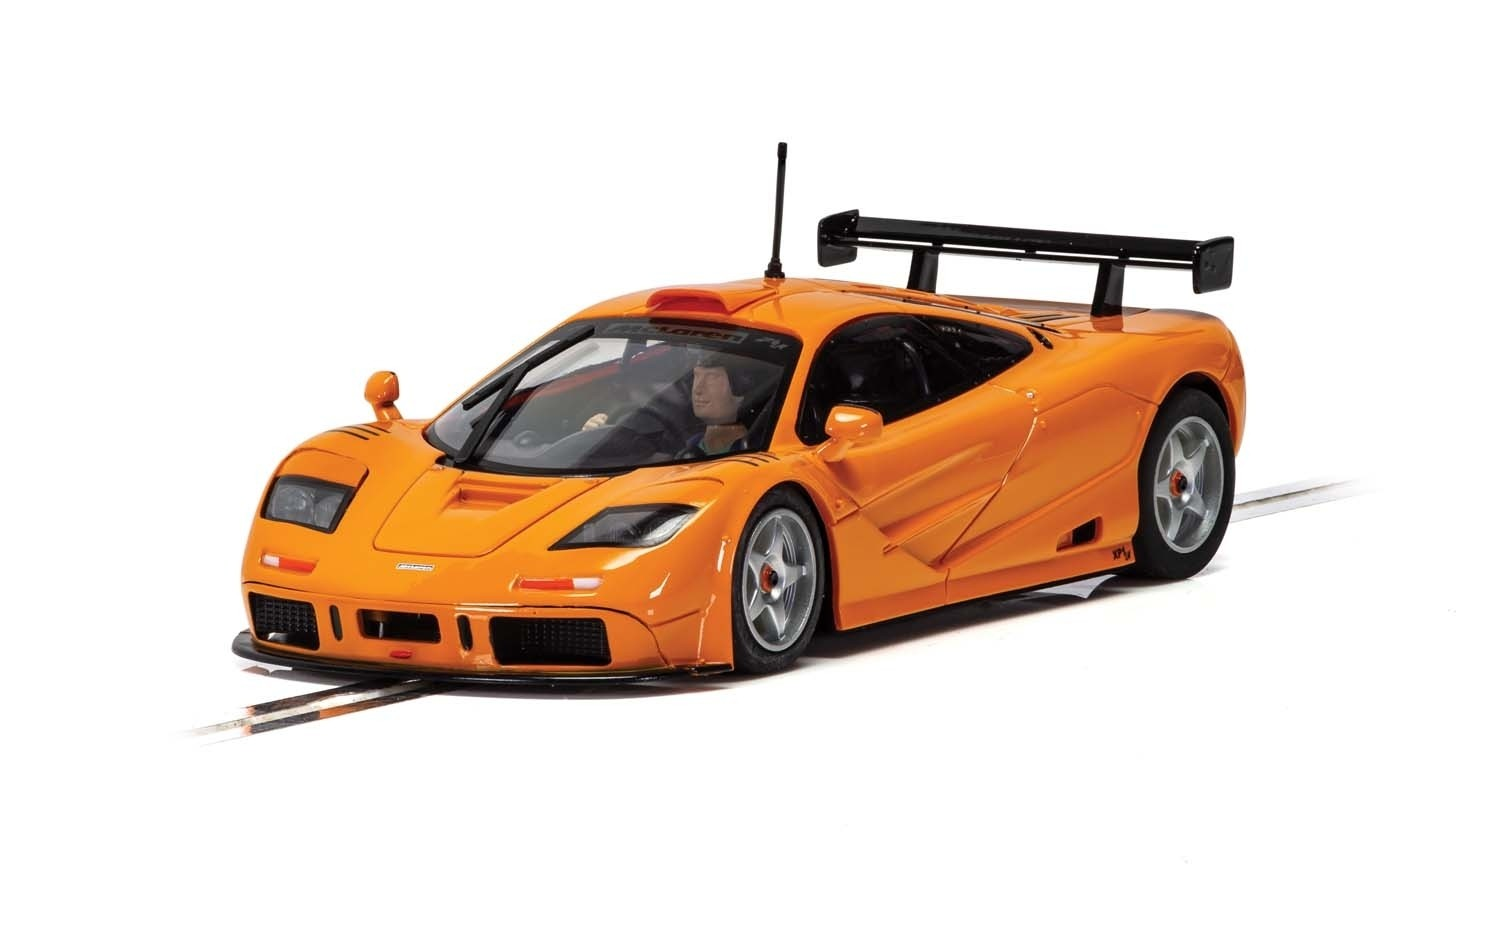 C4102 Scalextric Mclaren F1 GTR, Papaya Orange